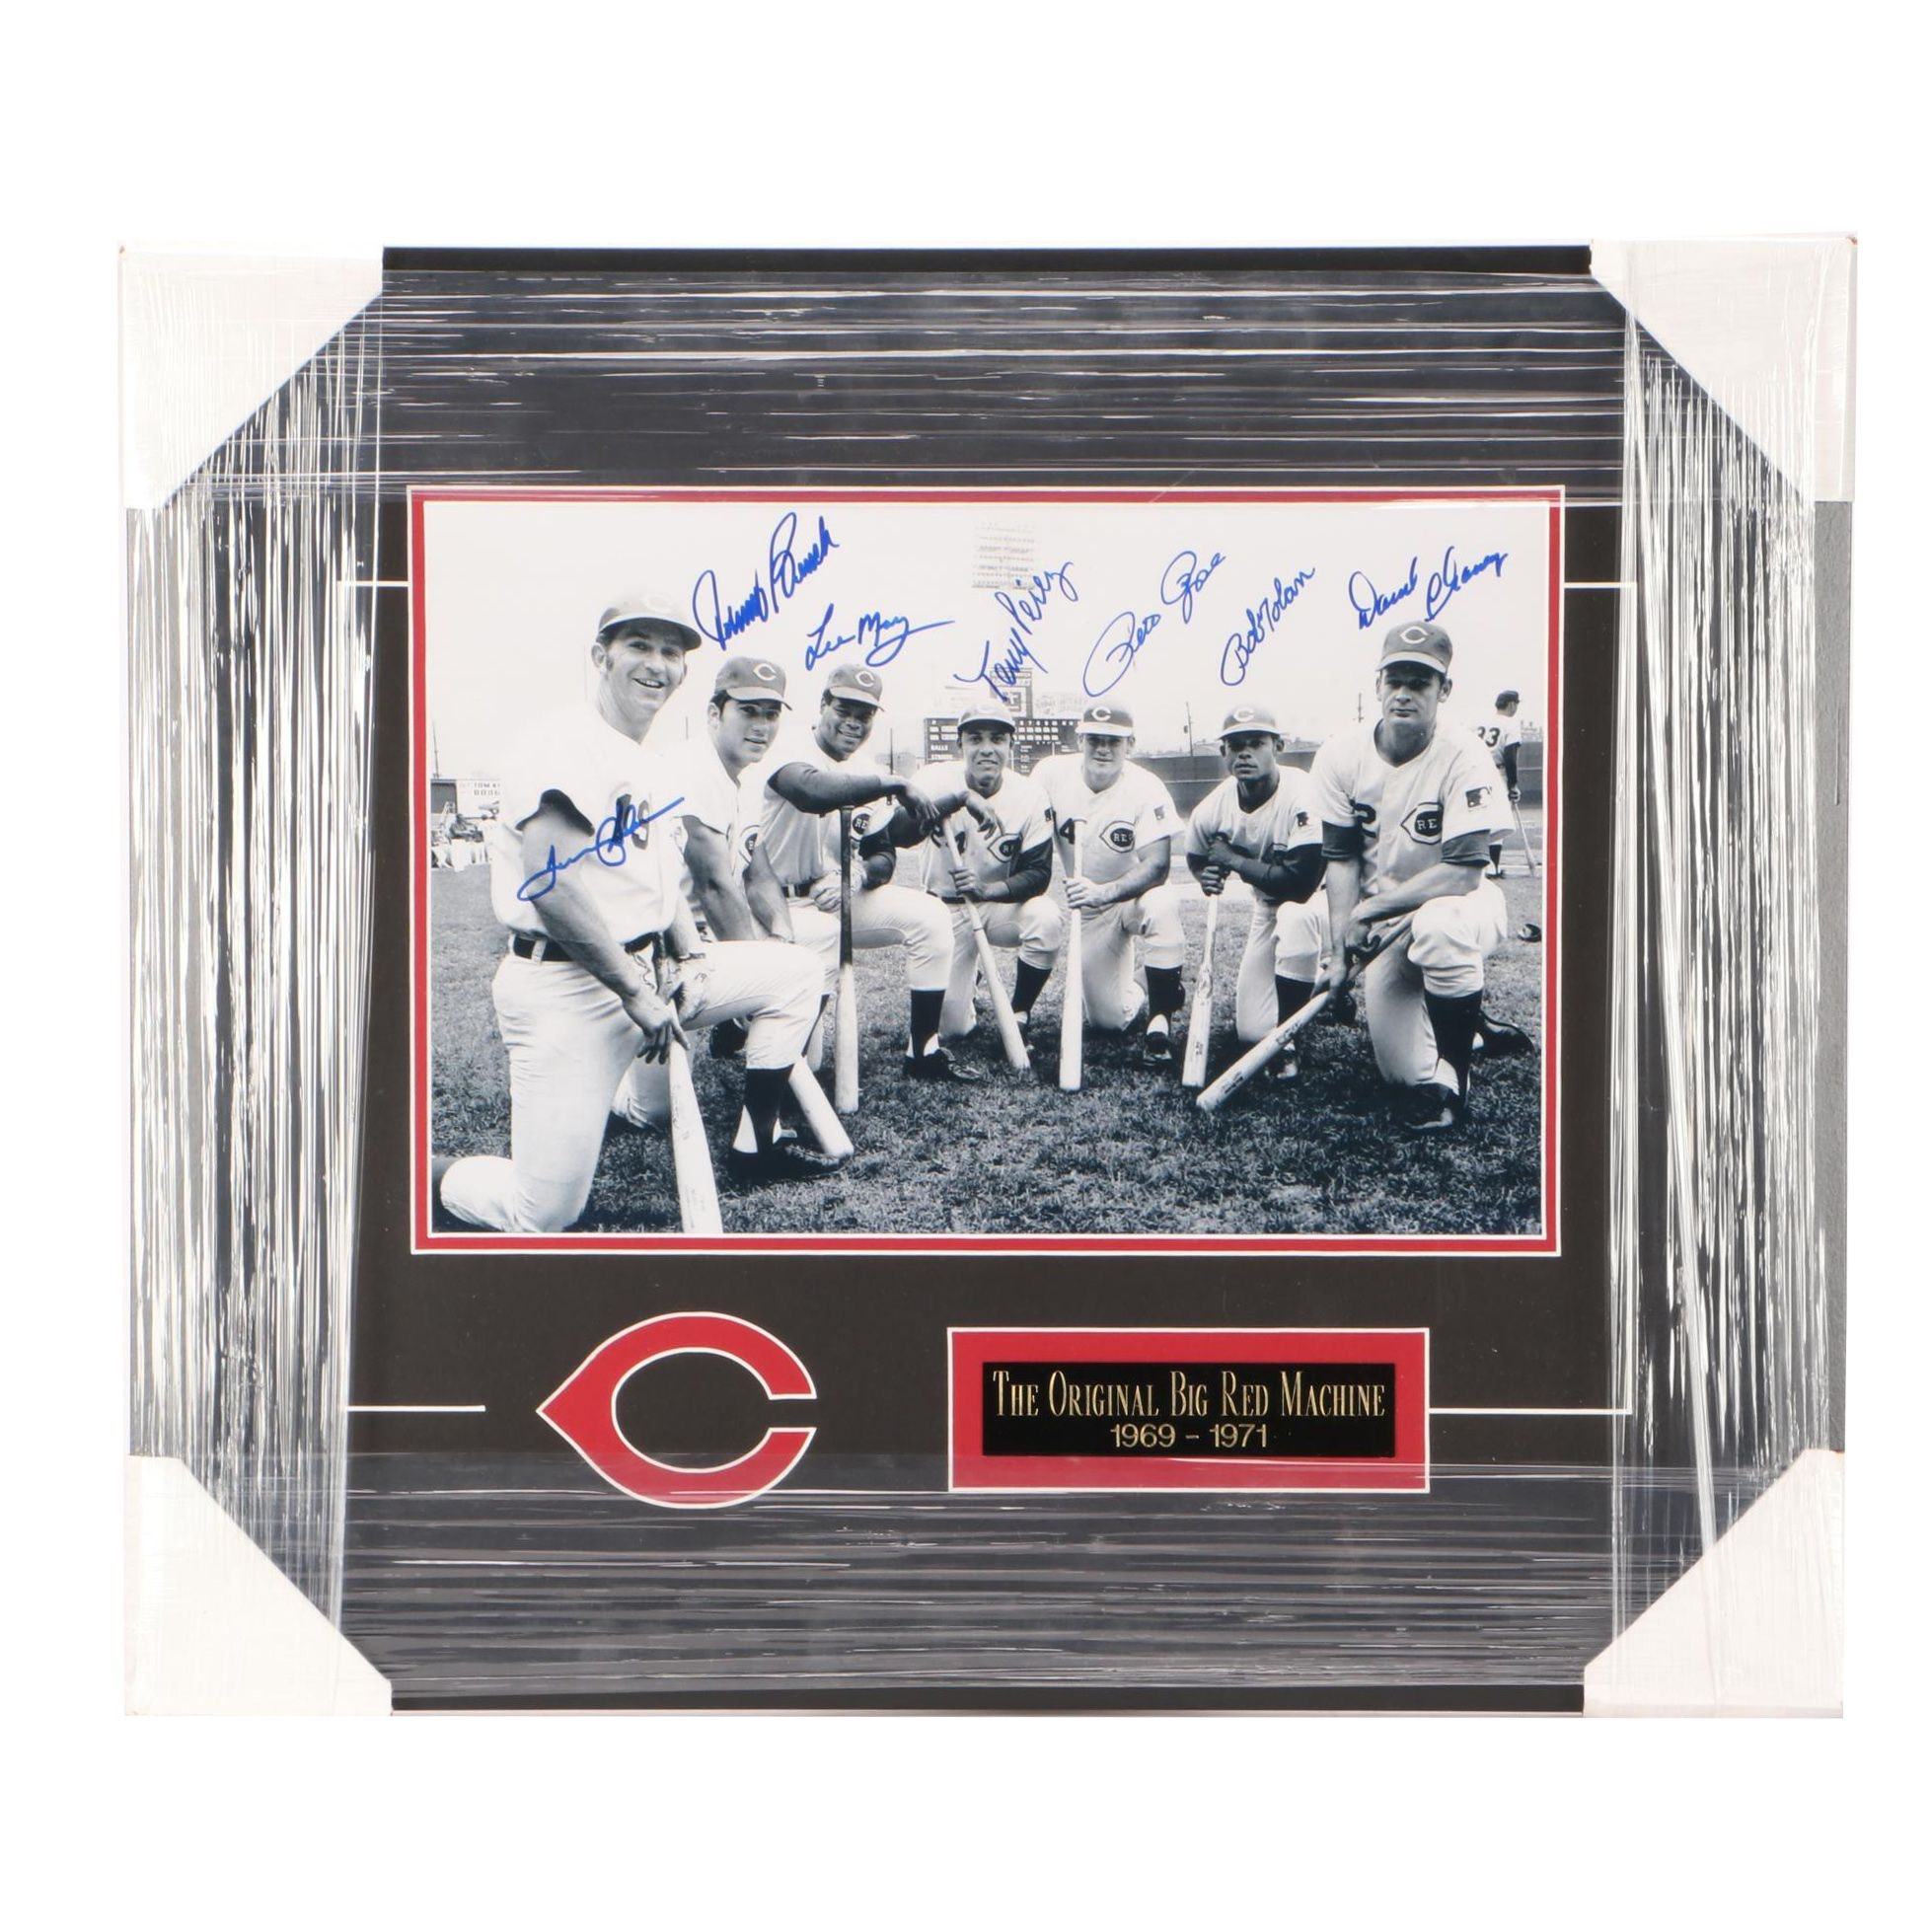 Professionally Matted and Framed Big Red Machine Autographed Display COA